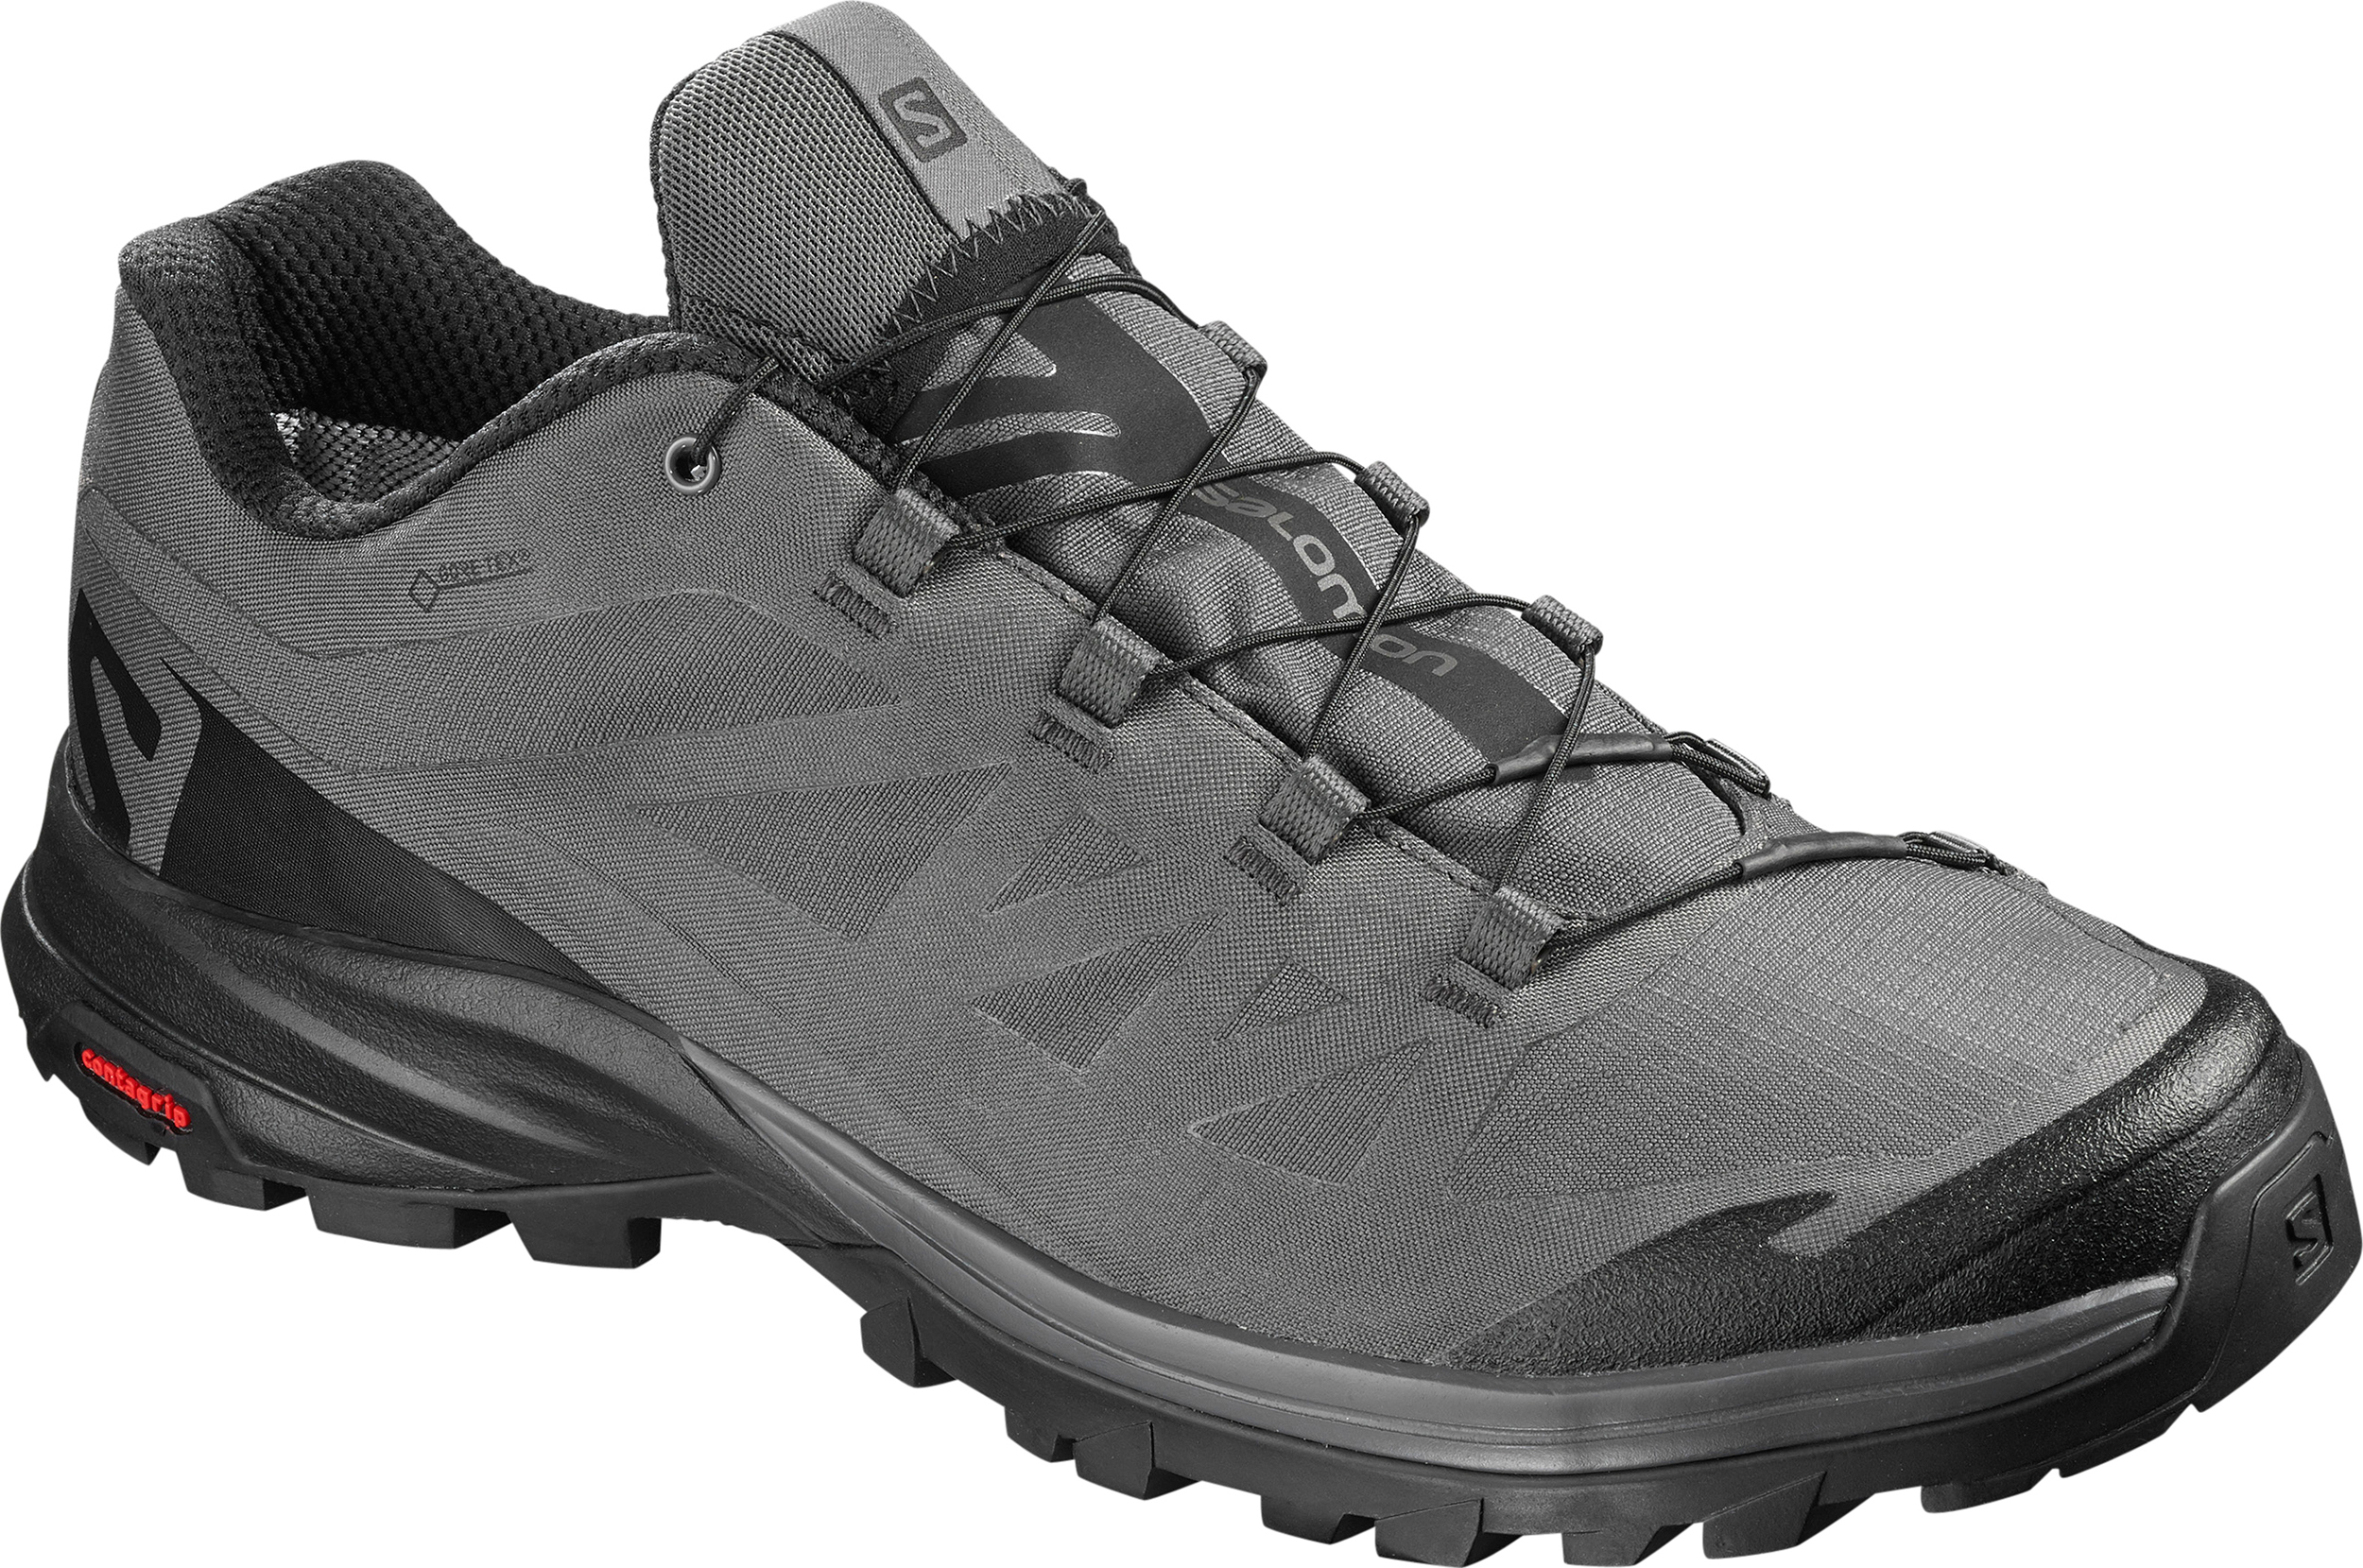 save off cf94c 9a10a Salomon Camping and hiking footwear